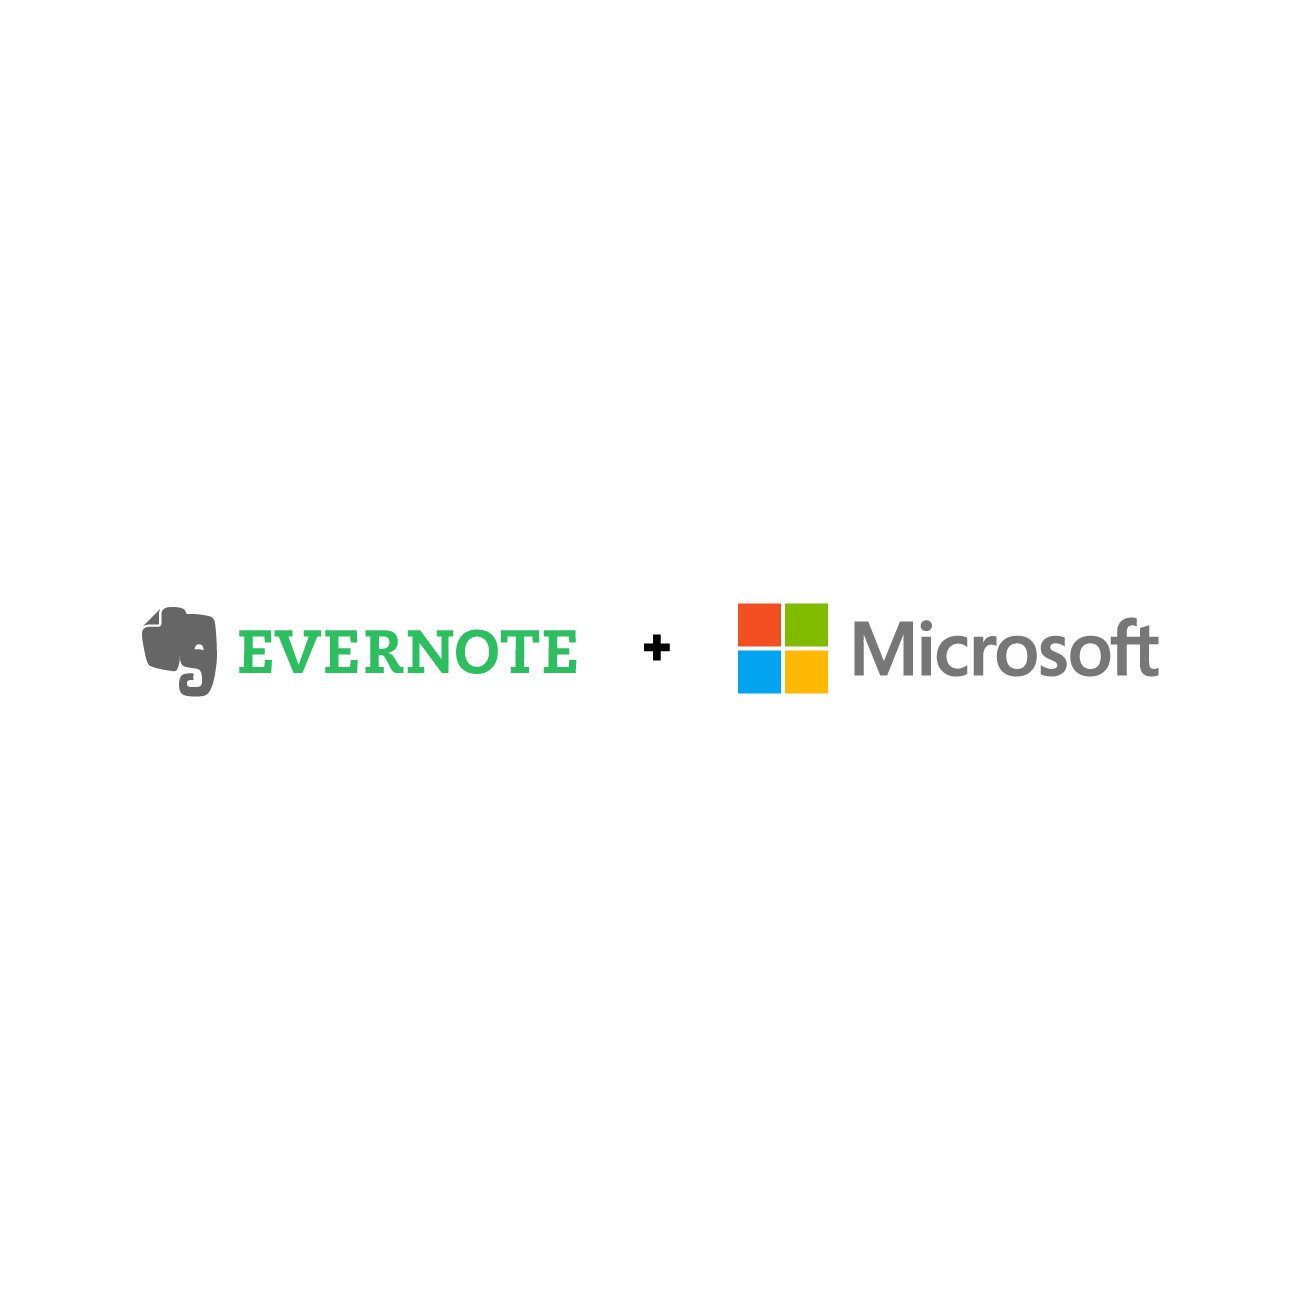 Evernote and Microsoft logos side by side